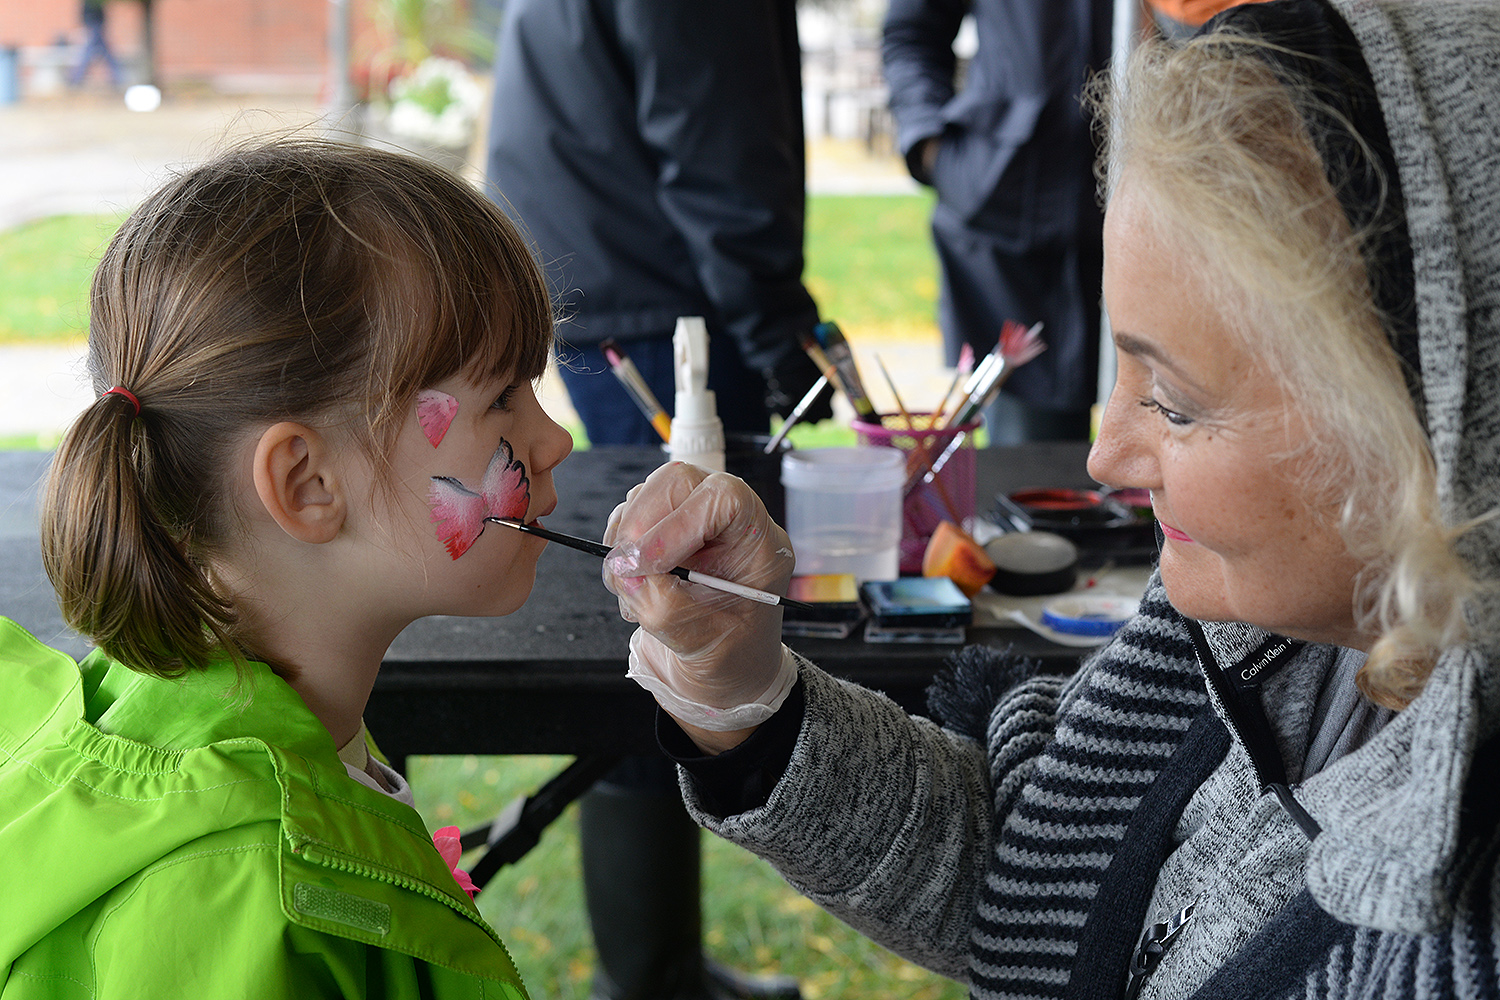 On Oct. 22, alumni, students, families and the Middletown community enjoyed Homecoming and the 4th annual Middletown Day.